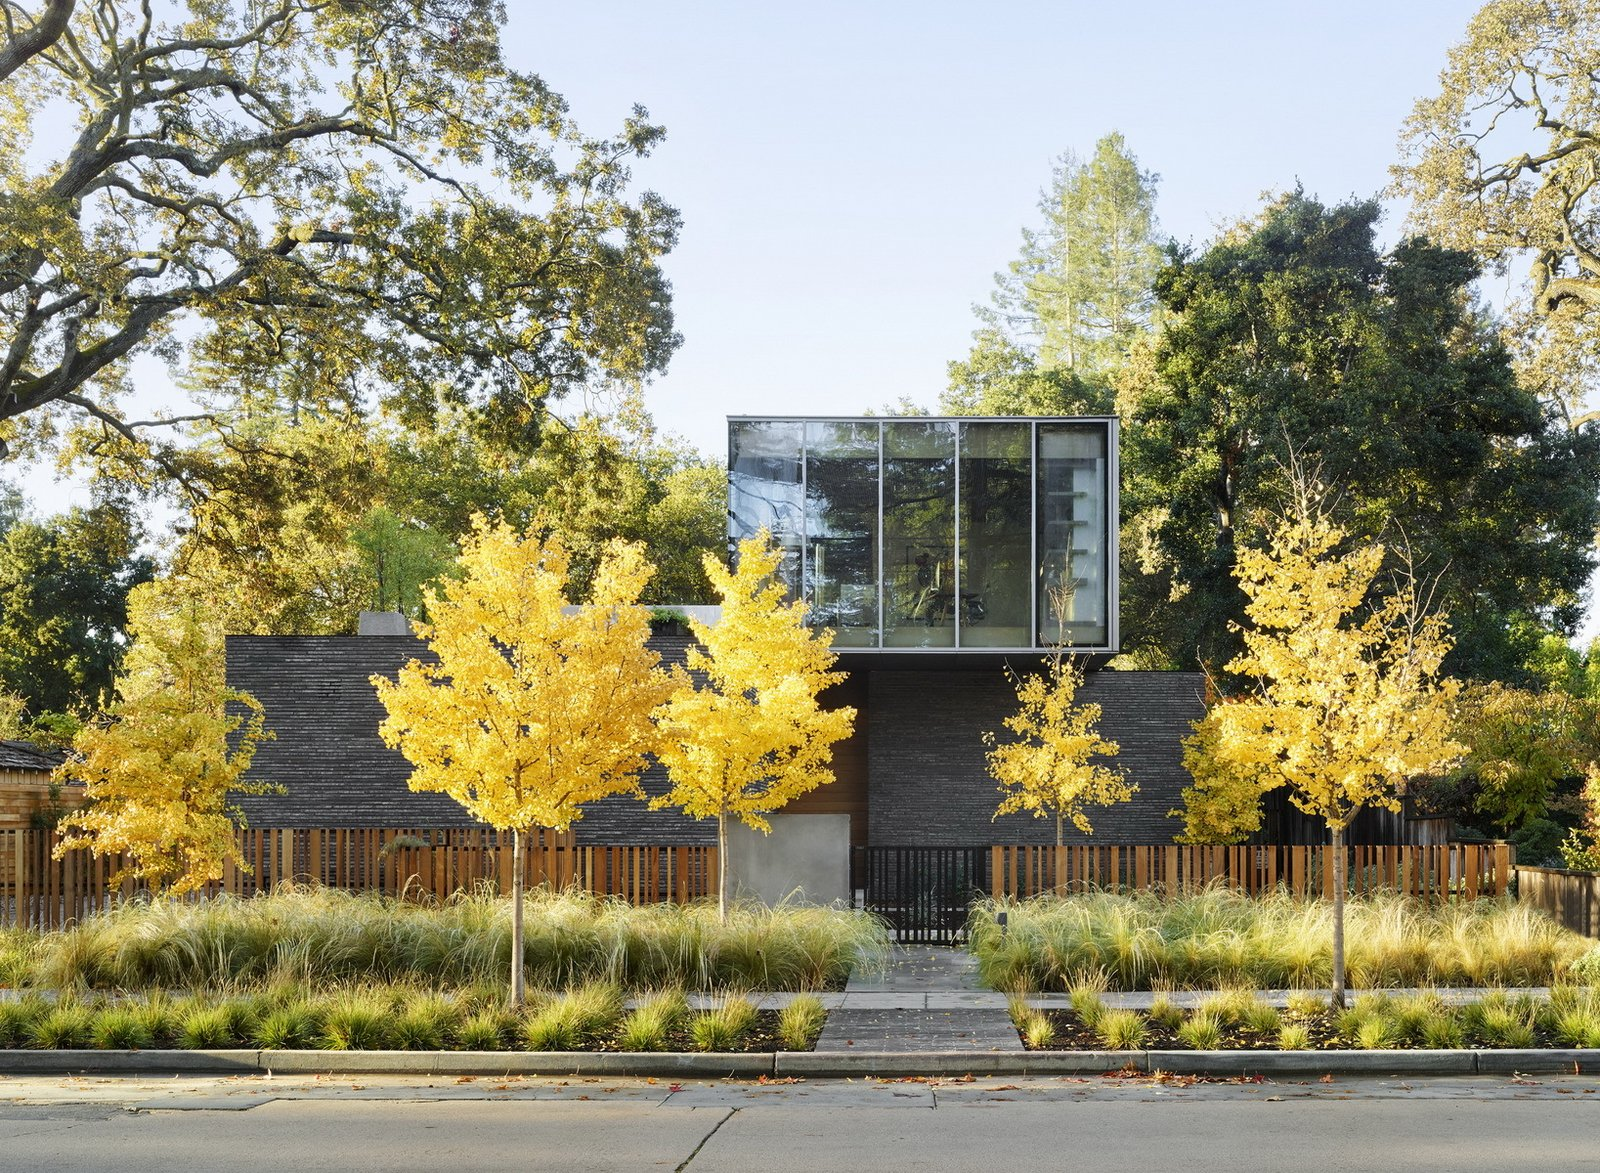 Exterior, Metal Siding Material, House Building Type, Flat RoofLine, and Brick Siding Material  Waverley Residence by Ehrlich Yanai Rhee Chaney Architects